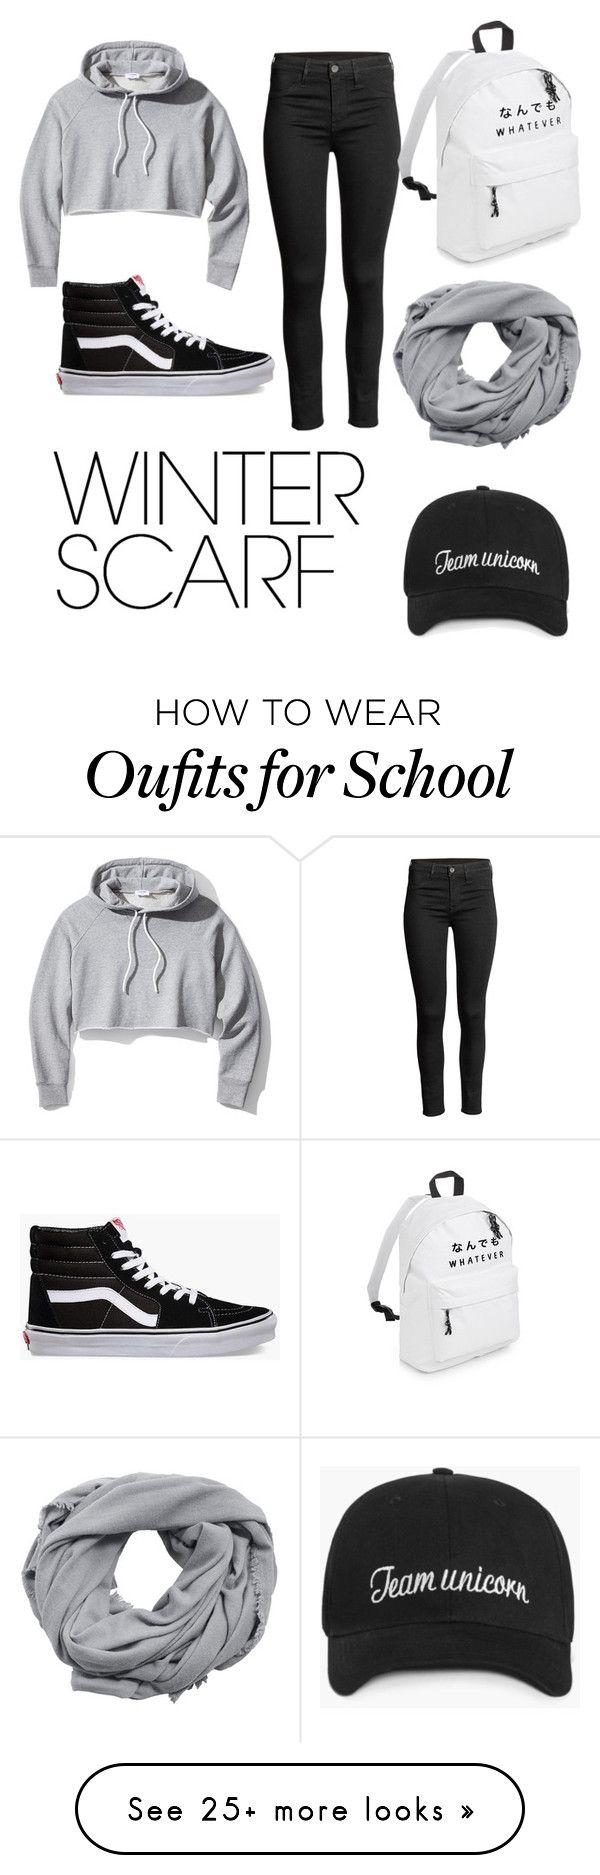 """""""Chill Vibes"""" by katiethealien on Polyvore featuring Frame, MANGO, Vans and winterscarf"""